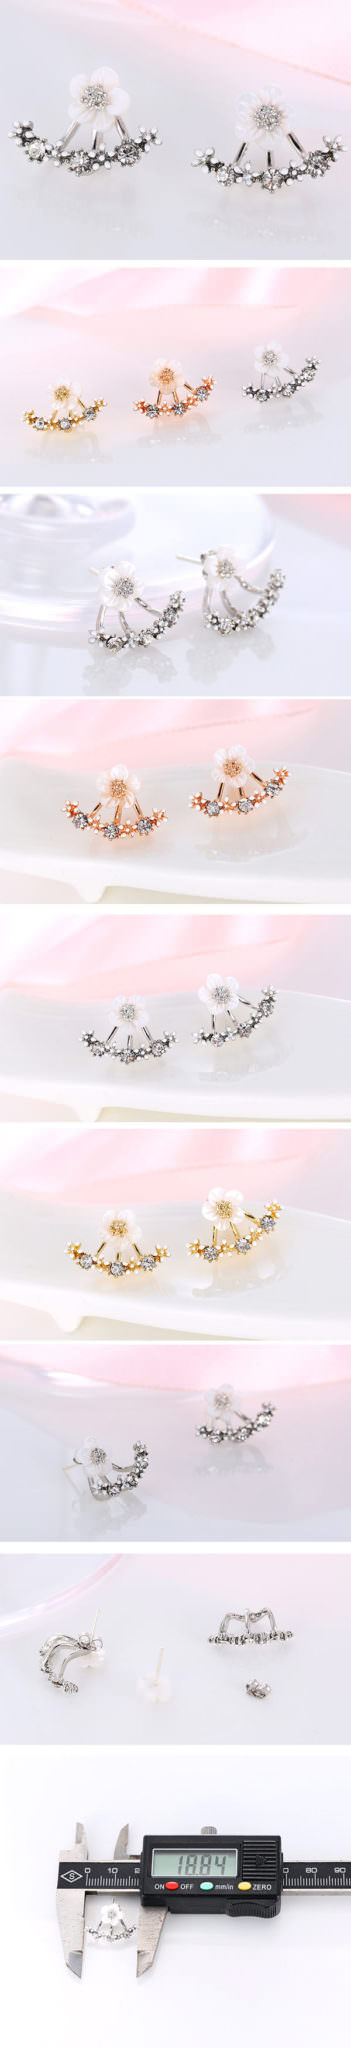 11559-37915dc6fb1fa3ceaf77b0d0328ccd5f Korean Floral Ear Jacket With Cubic Zircon Crystals